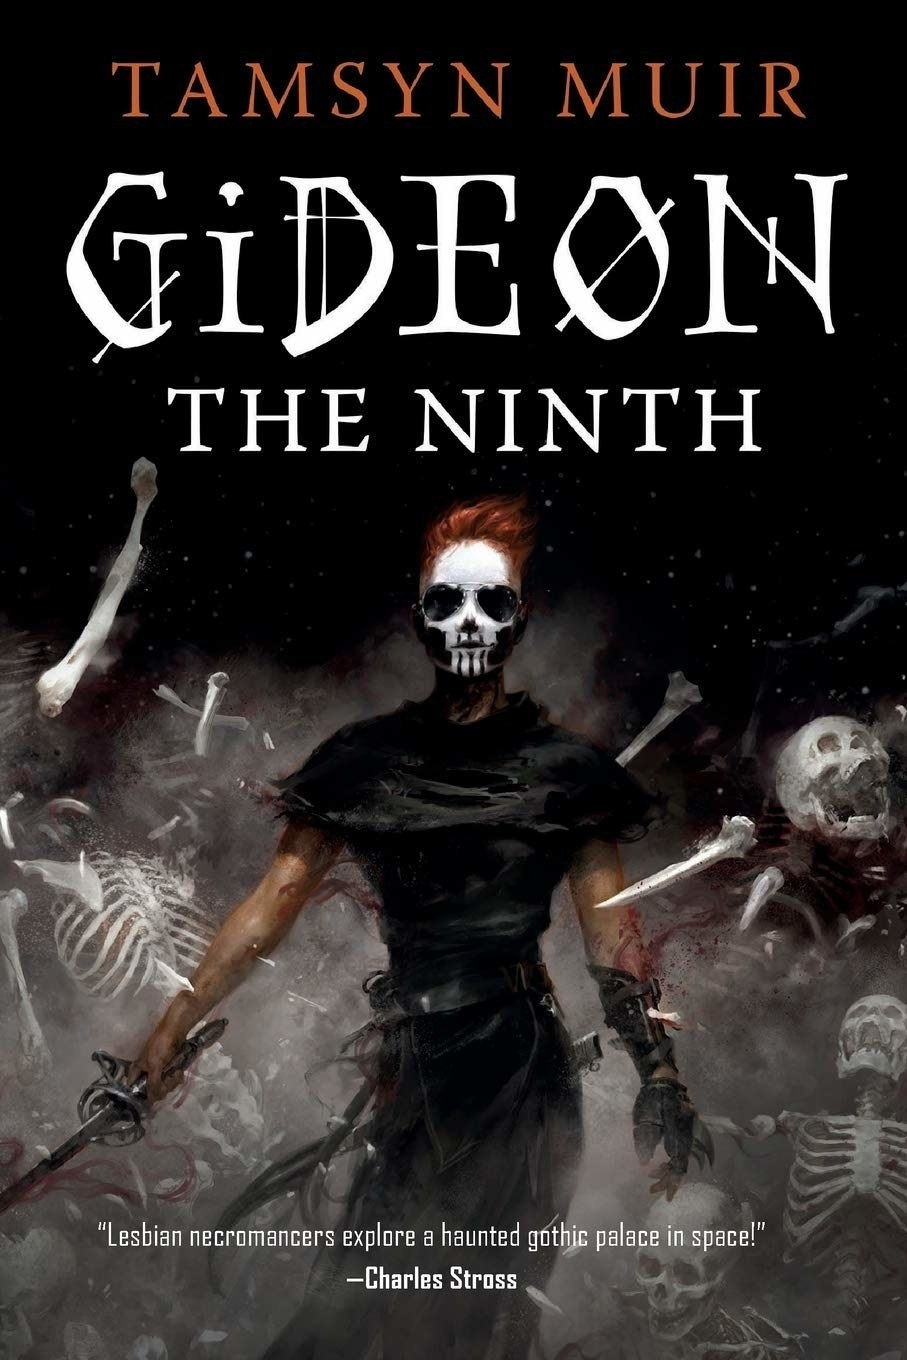 The cover of the book with a person with a skull face in the center